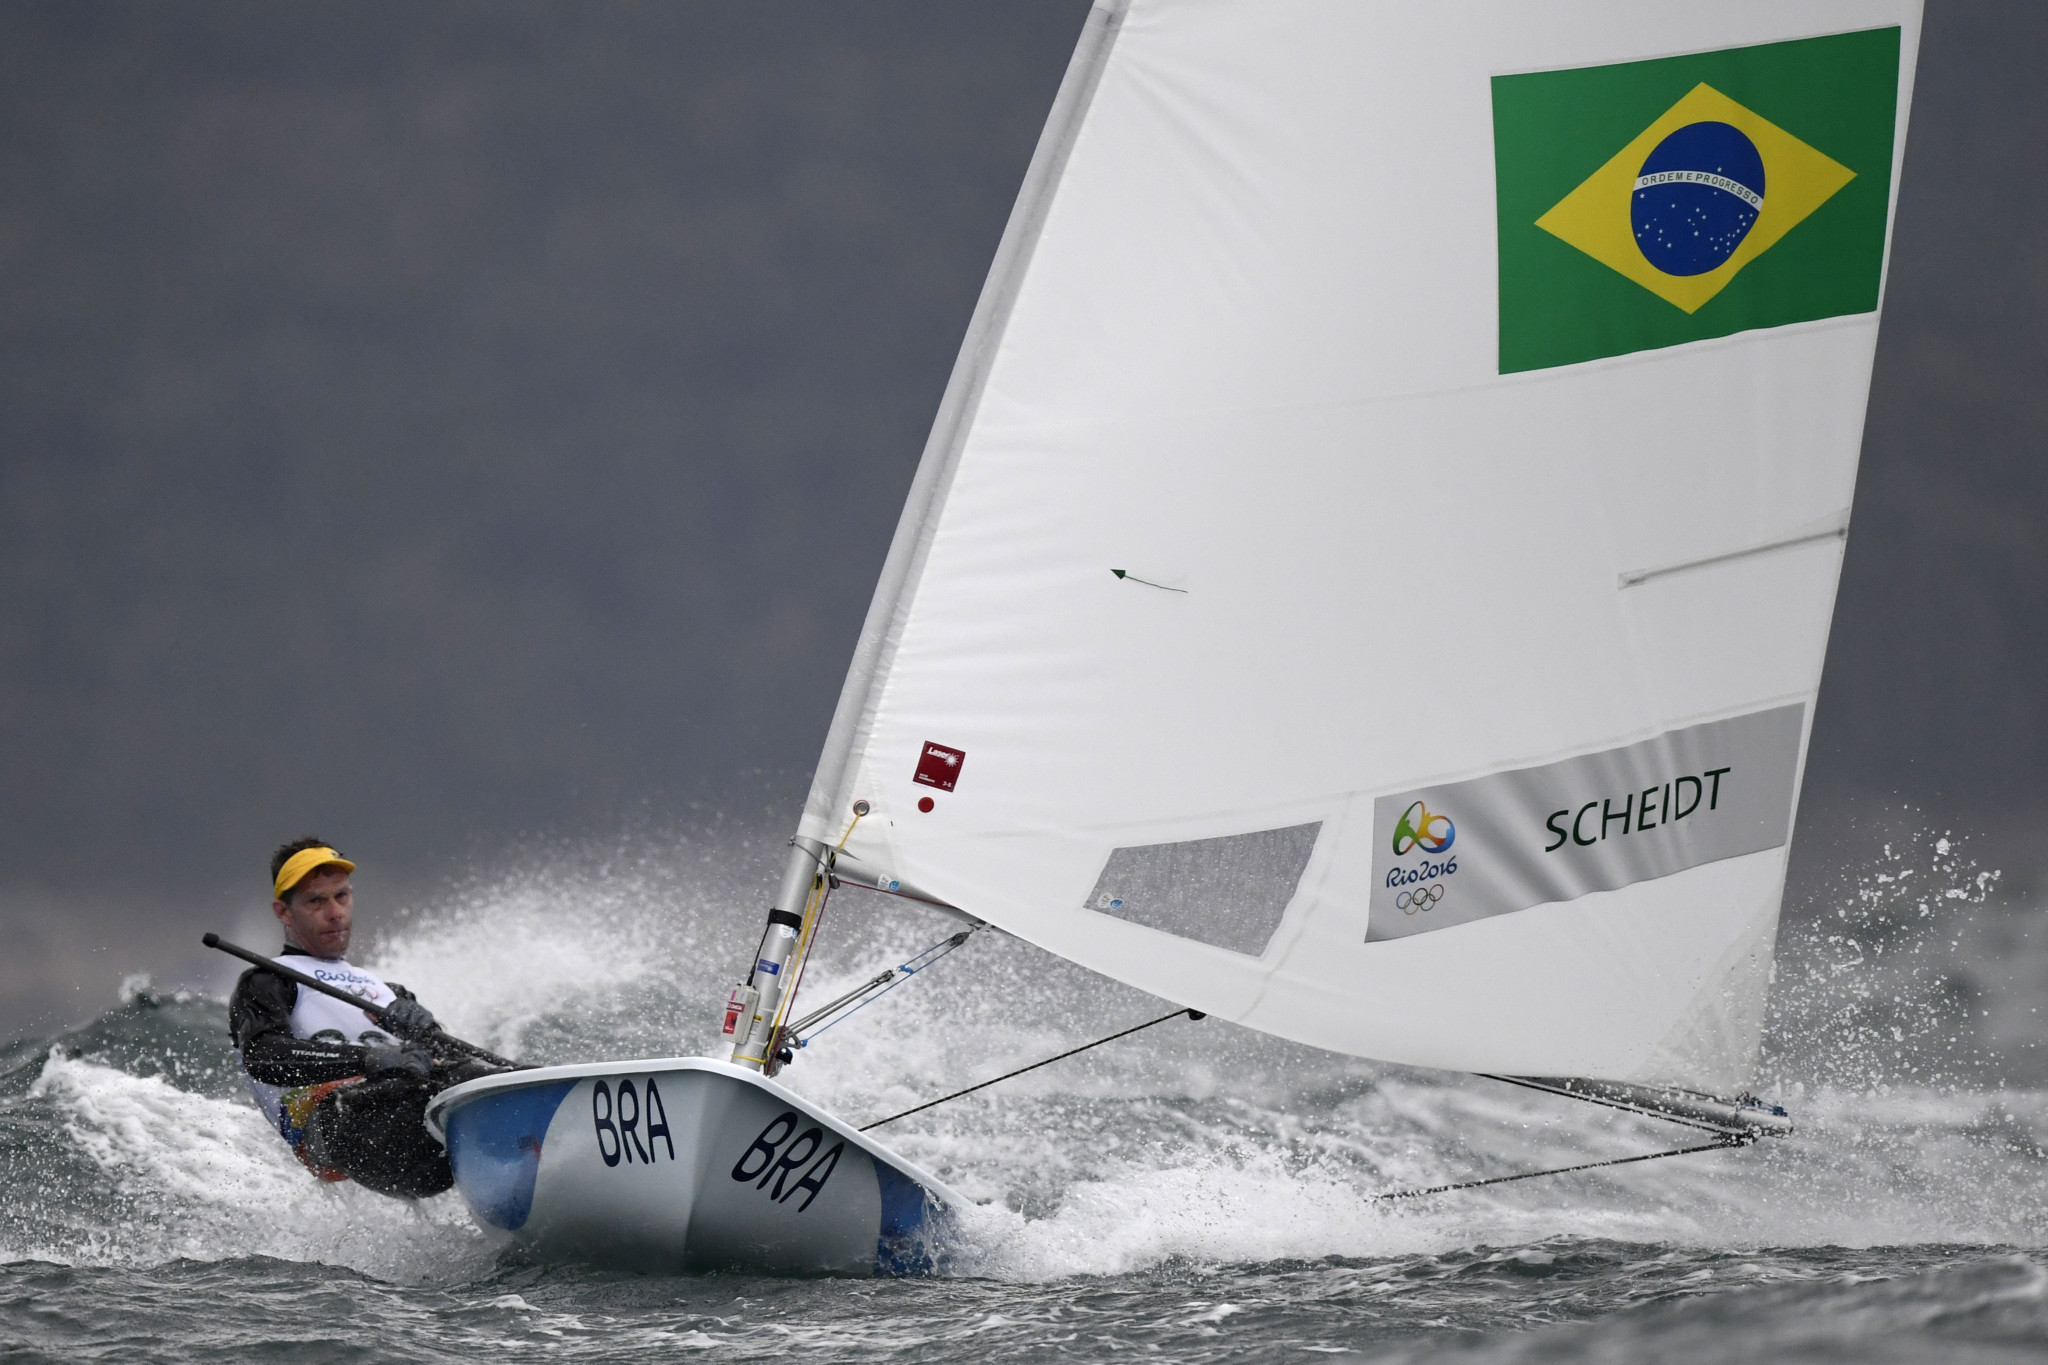 Robert Scheidt claimed the decision to retire from Olympic sailing was one of the most difficult he has ever made ©Getty Images